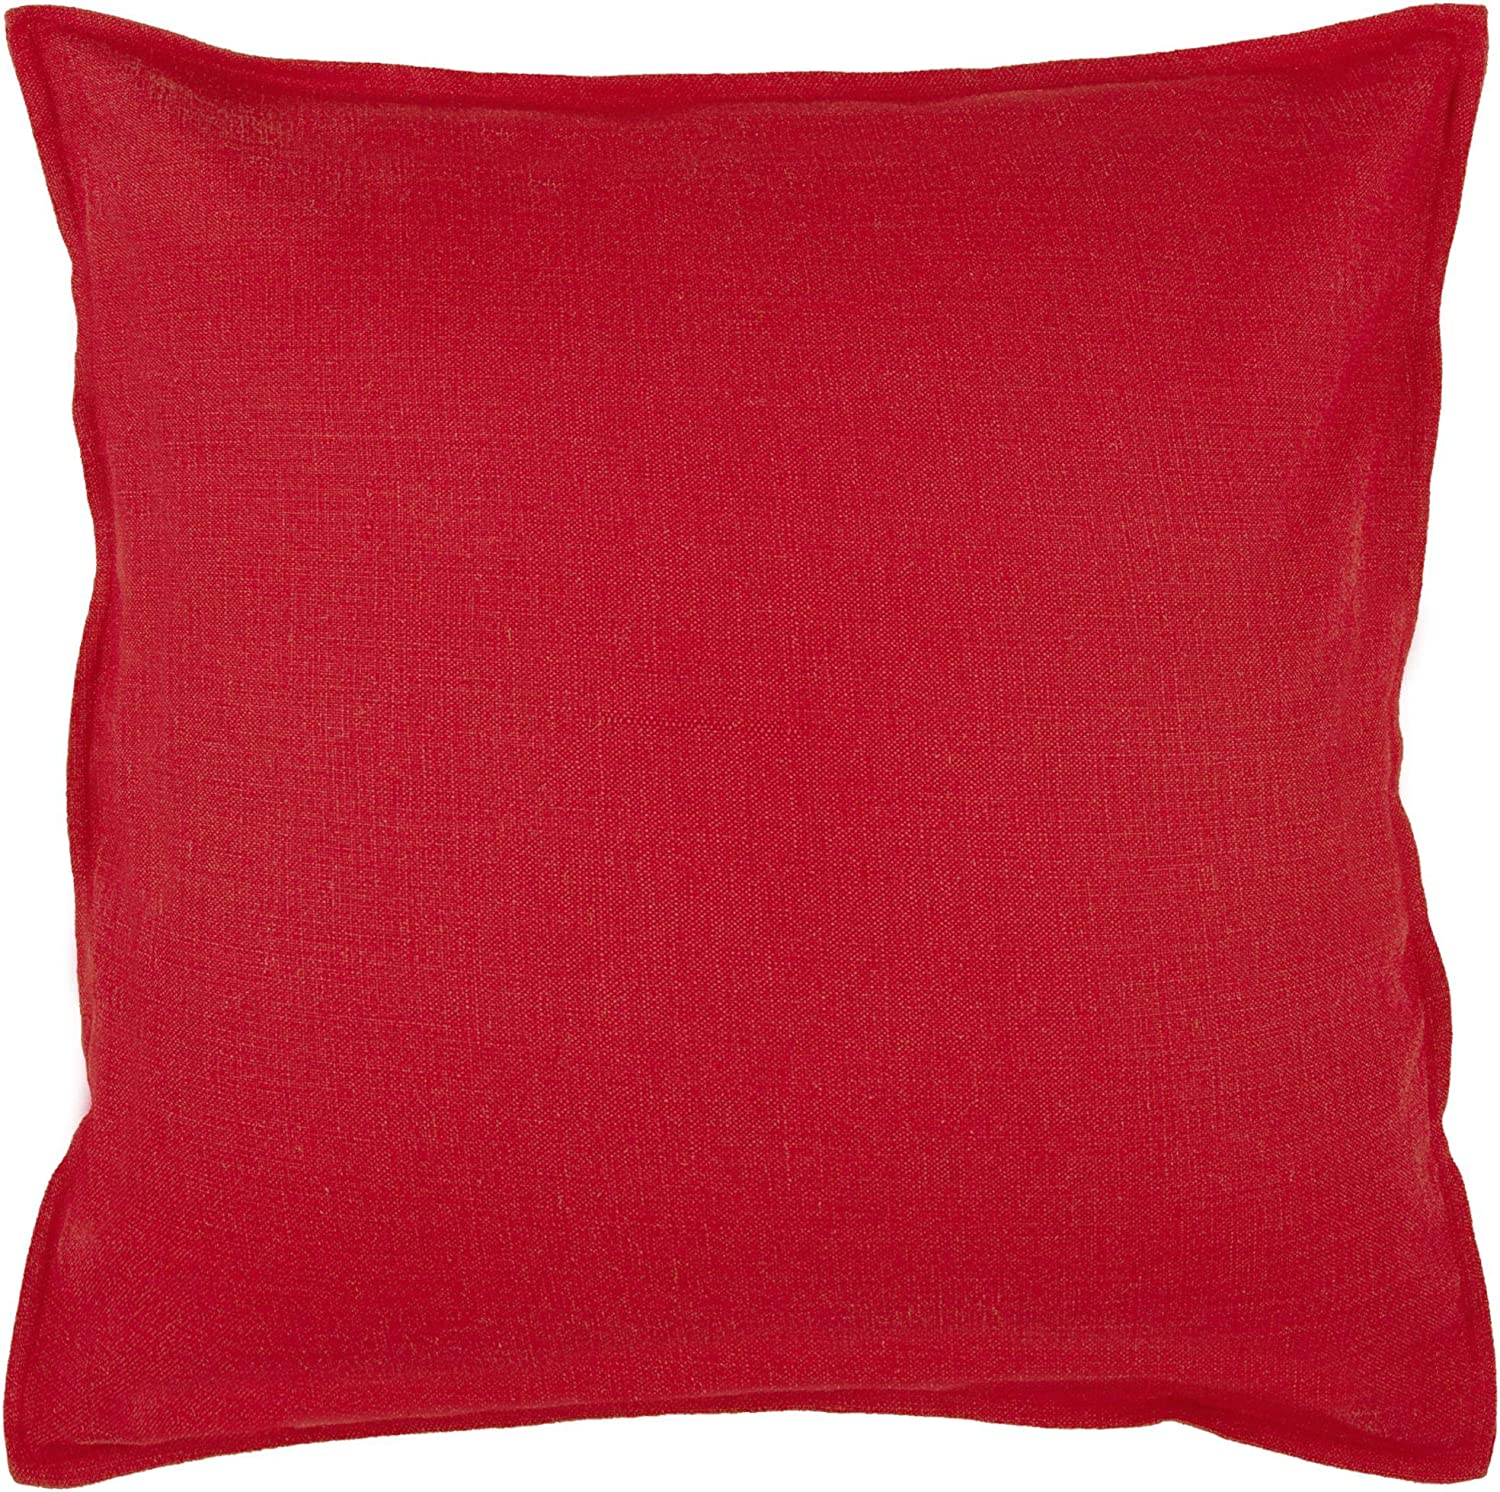 Lime Rizzy Home T-4094 20-Inch by 20-Inch Decorative Pillows